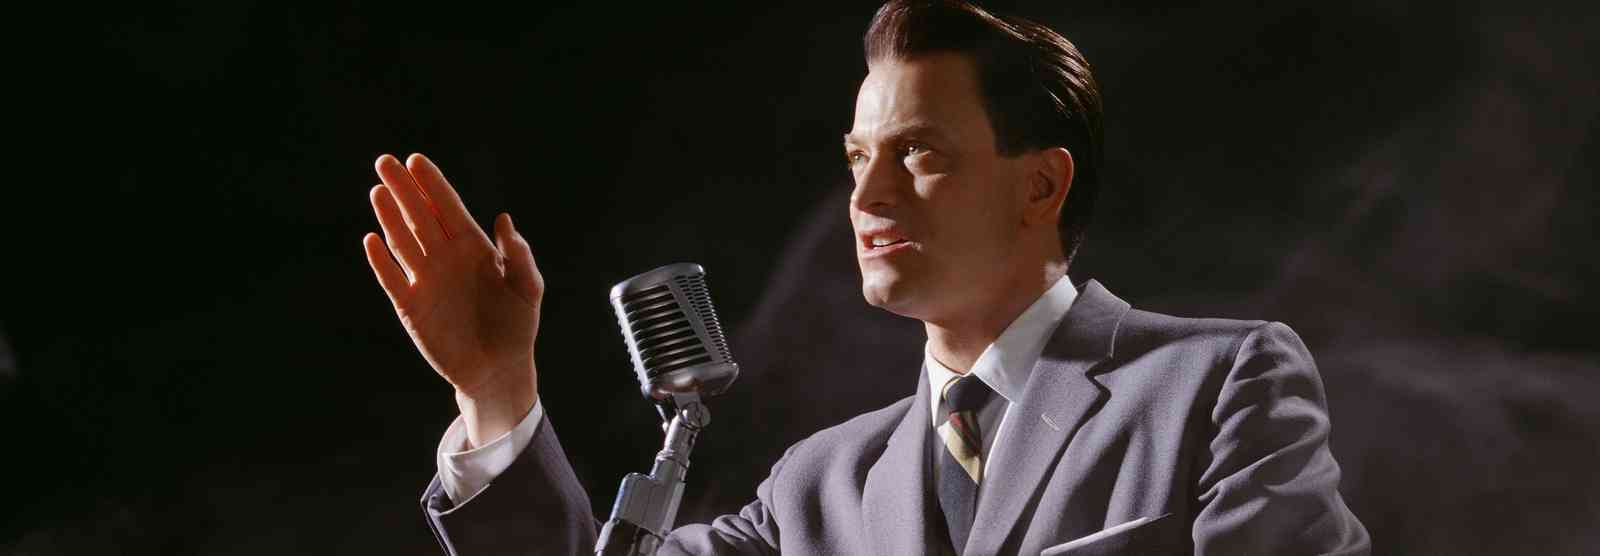 Gary Sinise as Governor George C. Wallace in George Wallace